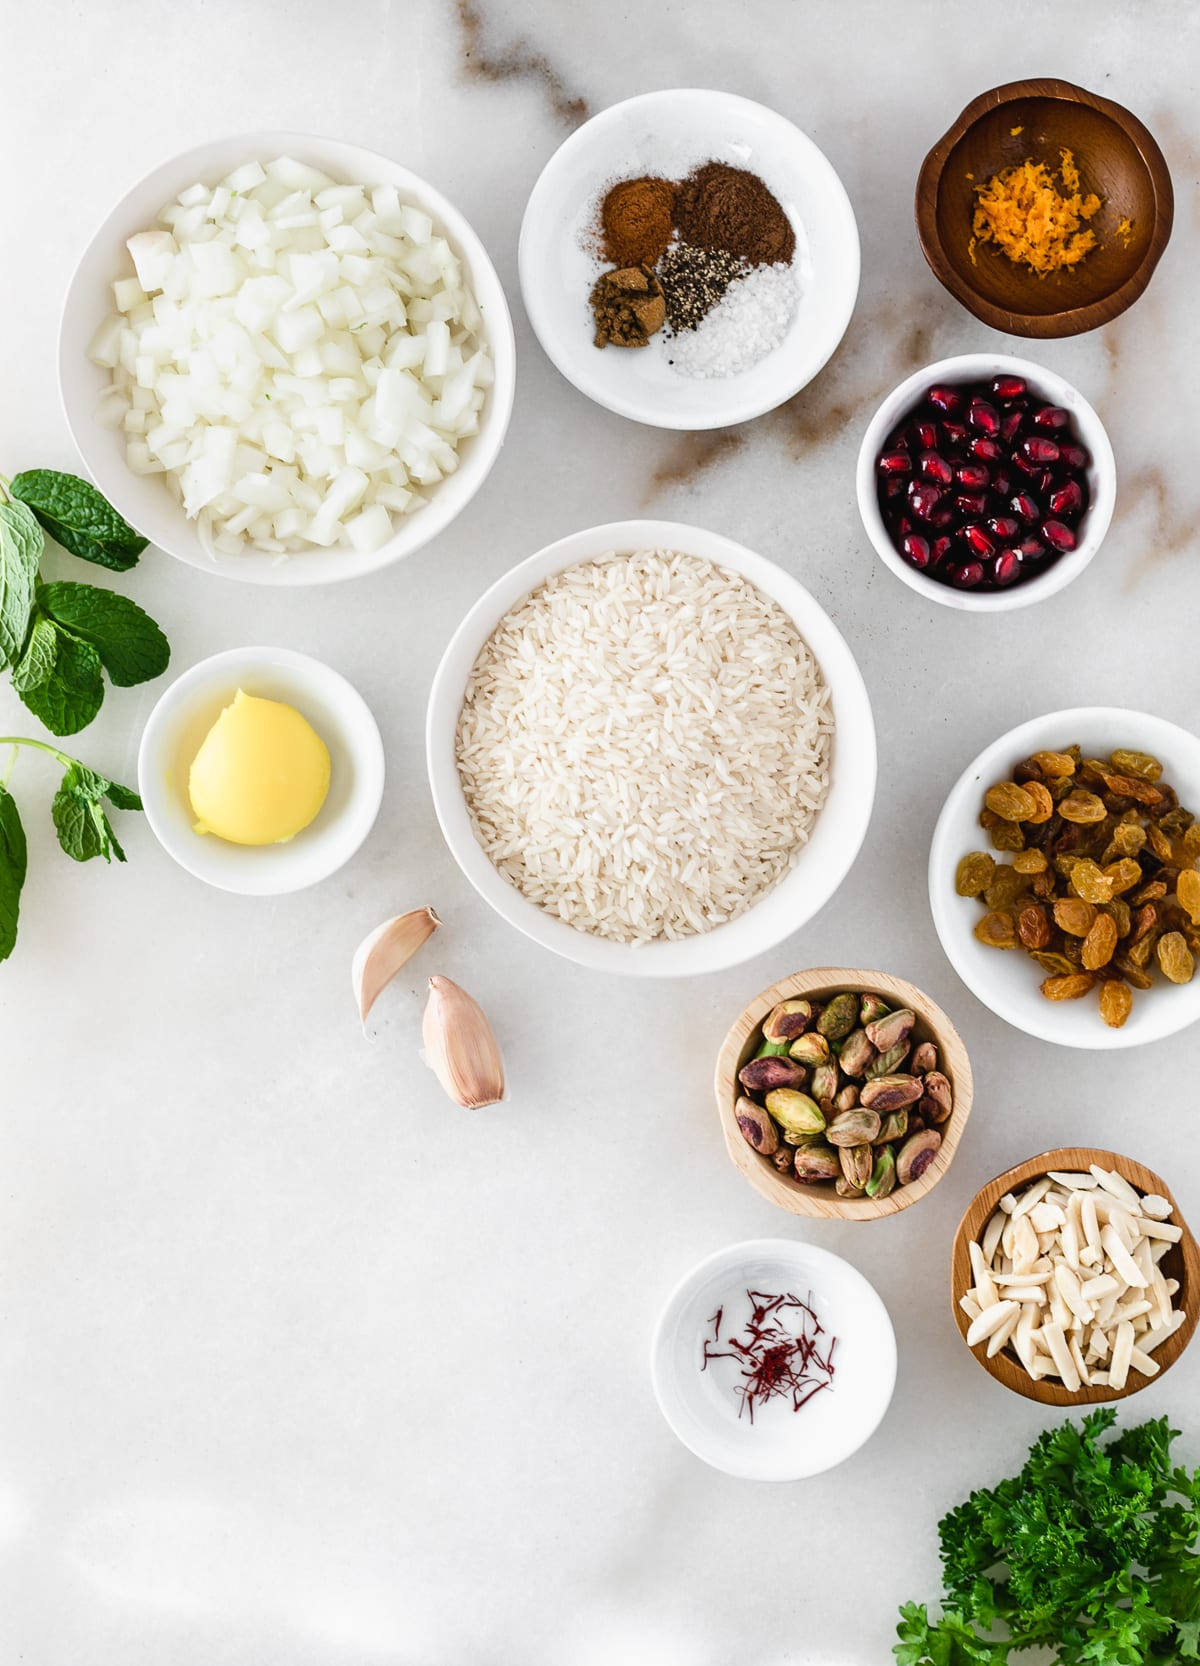 Ingredients for jeweled rice on a white background.